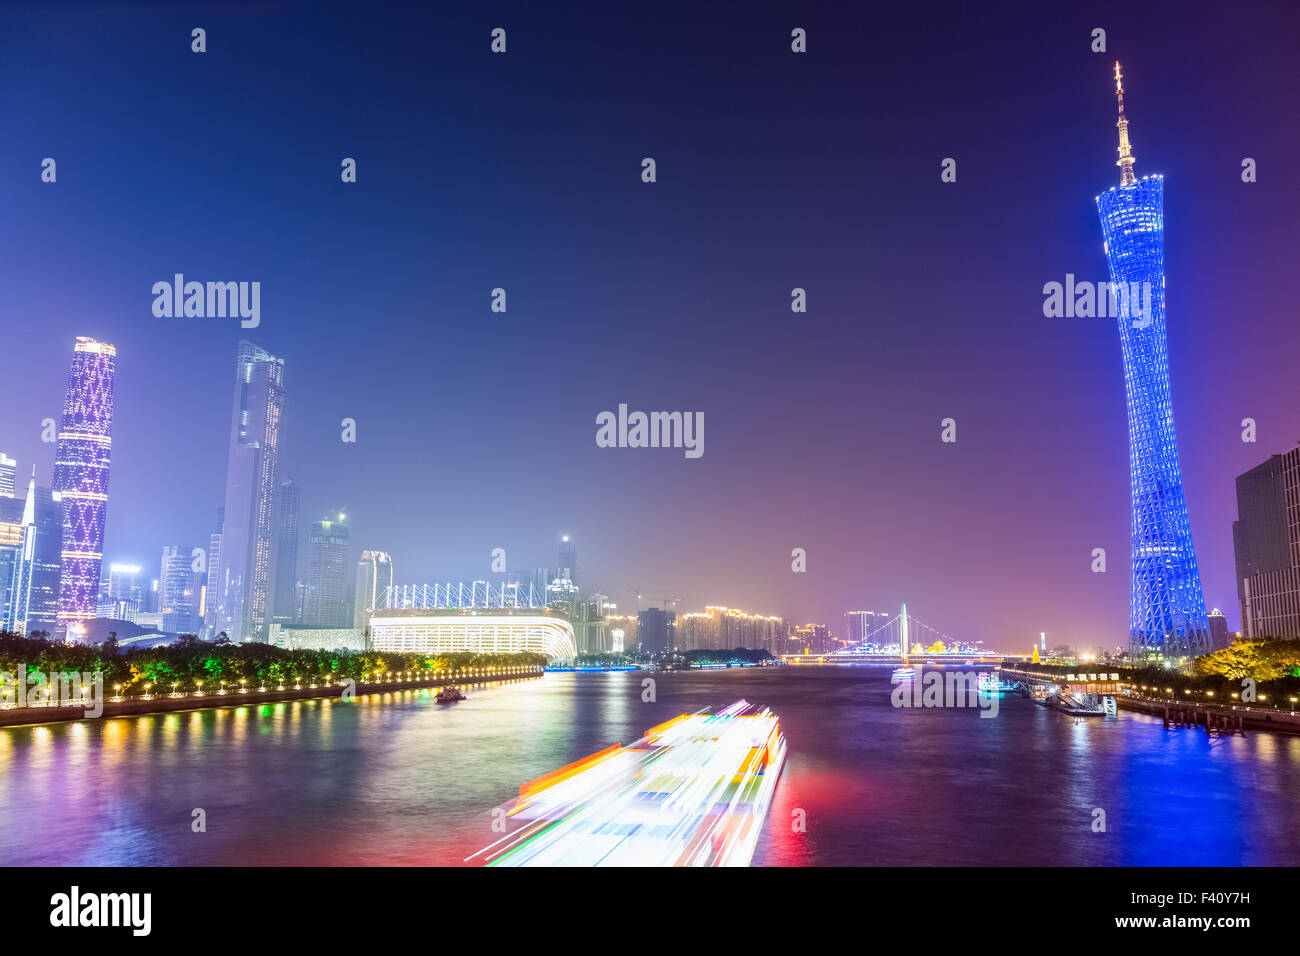 beautiful guangzhou pearl river at night - Stock Image